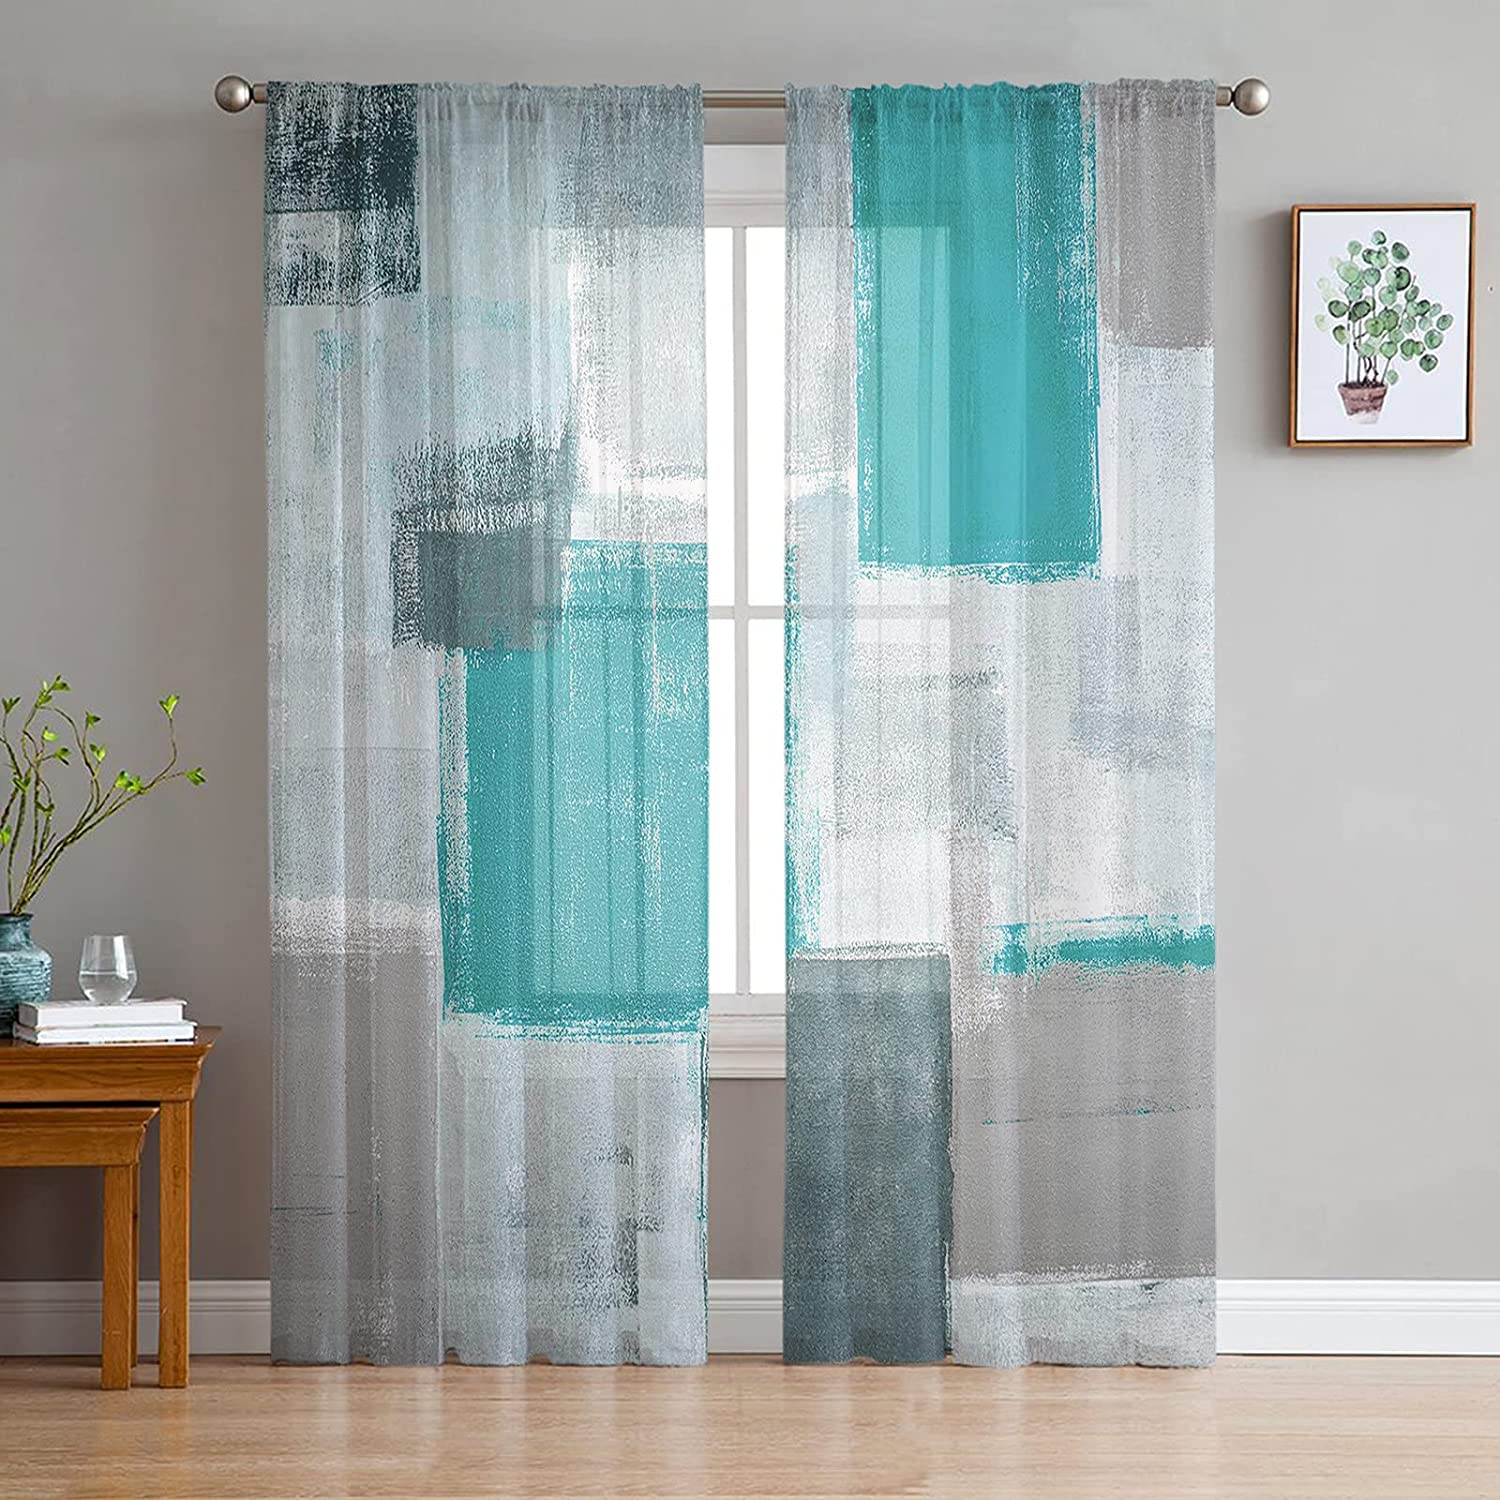 Semi Sheer Curtains 84 Inches Long for Bedroom Living Room Decor,2 Panels Thermal Insulated Grommet Window Curtain,Turquoise and Grey Abstract Geometric Window Treatments Curtains Drapes